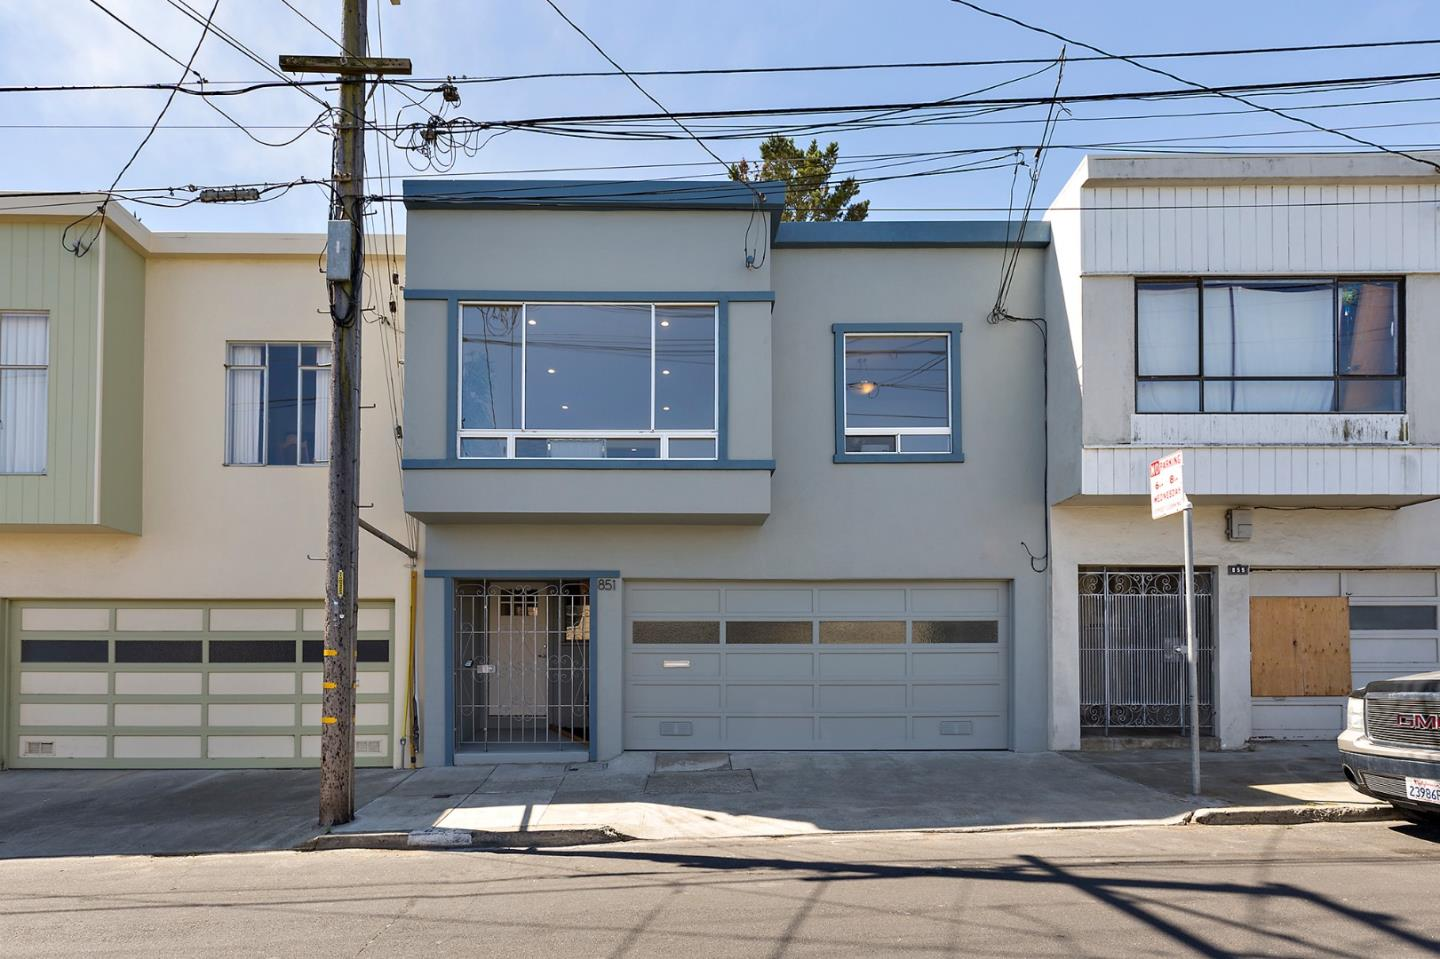 851 Bellevue Ave, Daly City, CA 94014 - MLS 81718238 - Coldwell Banker